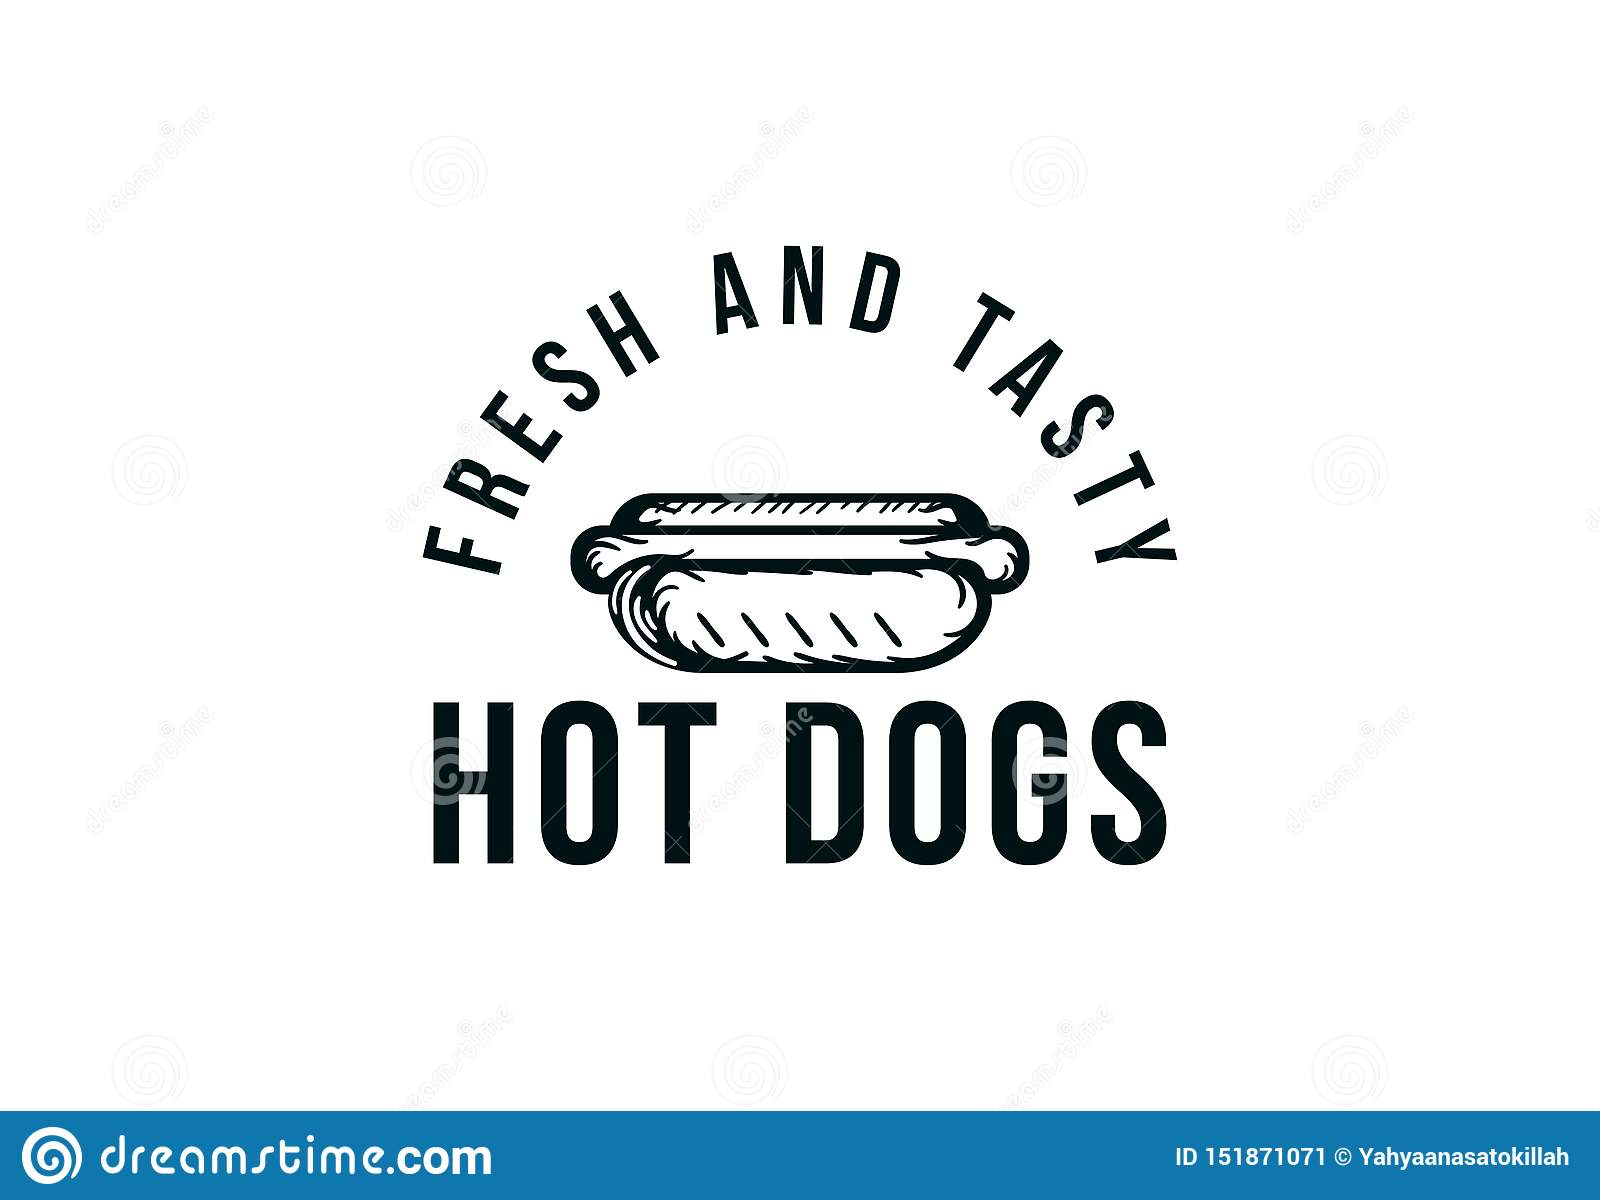 hot dog vector logo, fast food, junk food. vintage vector illustration.